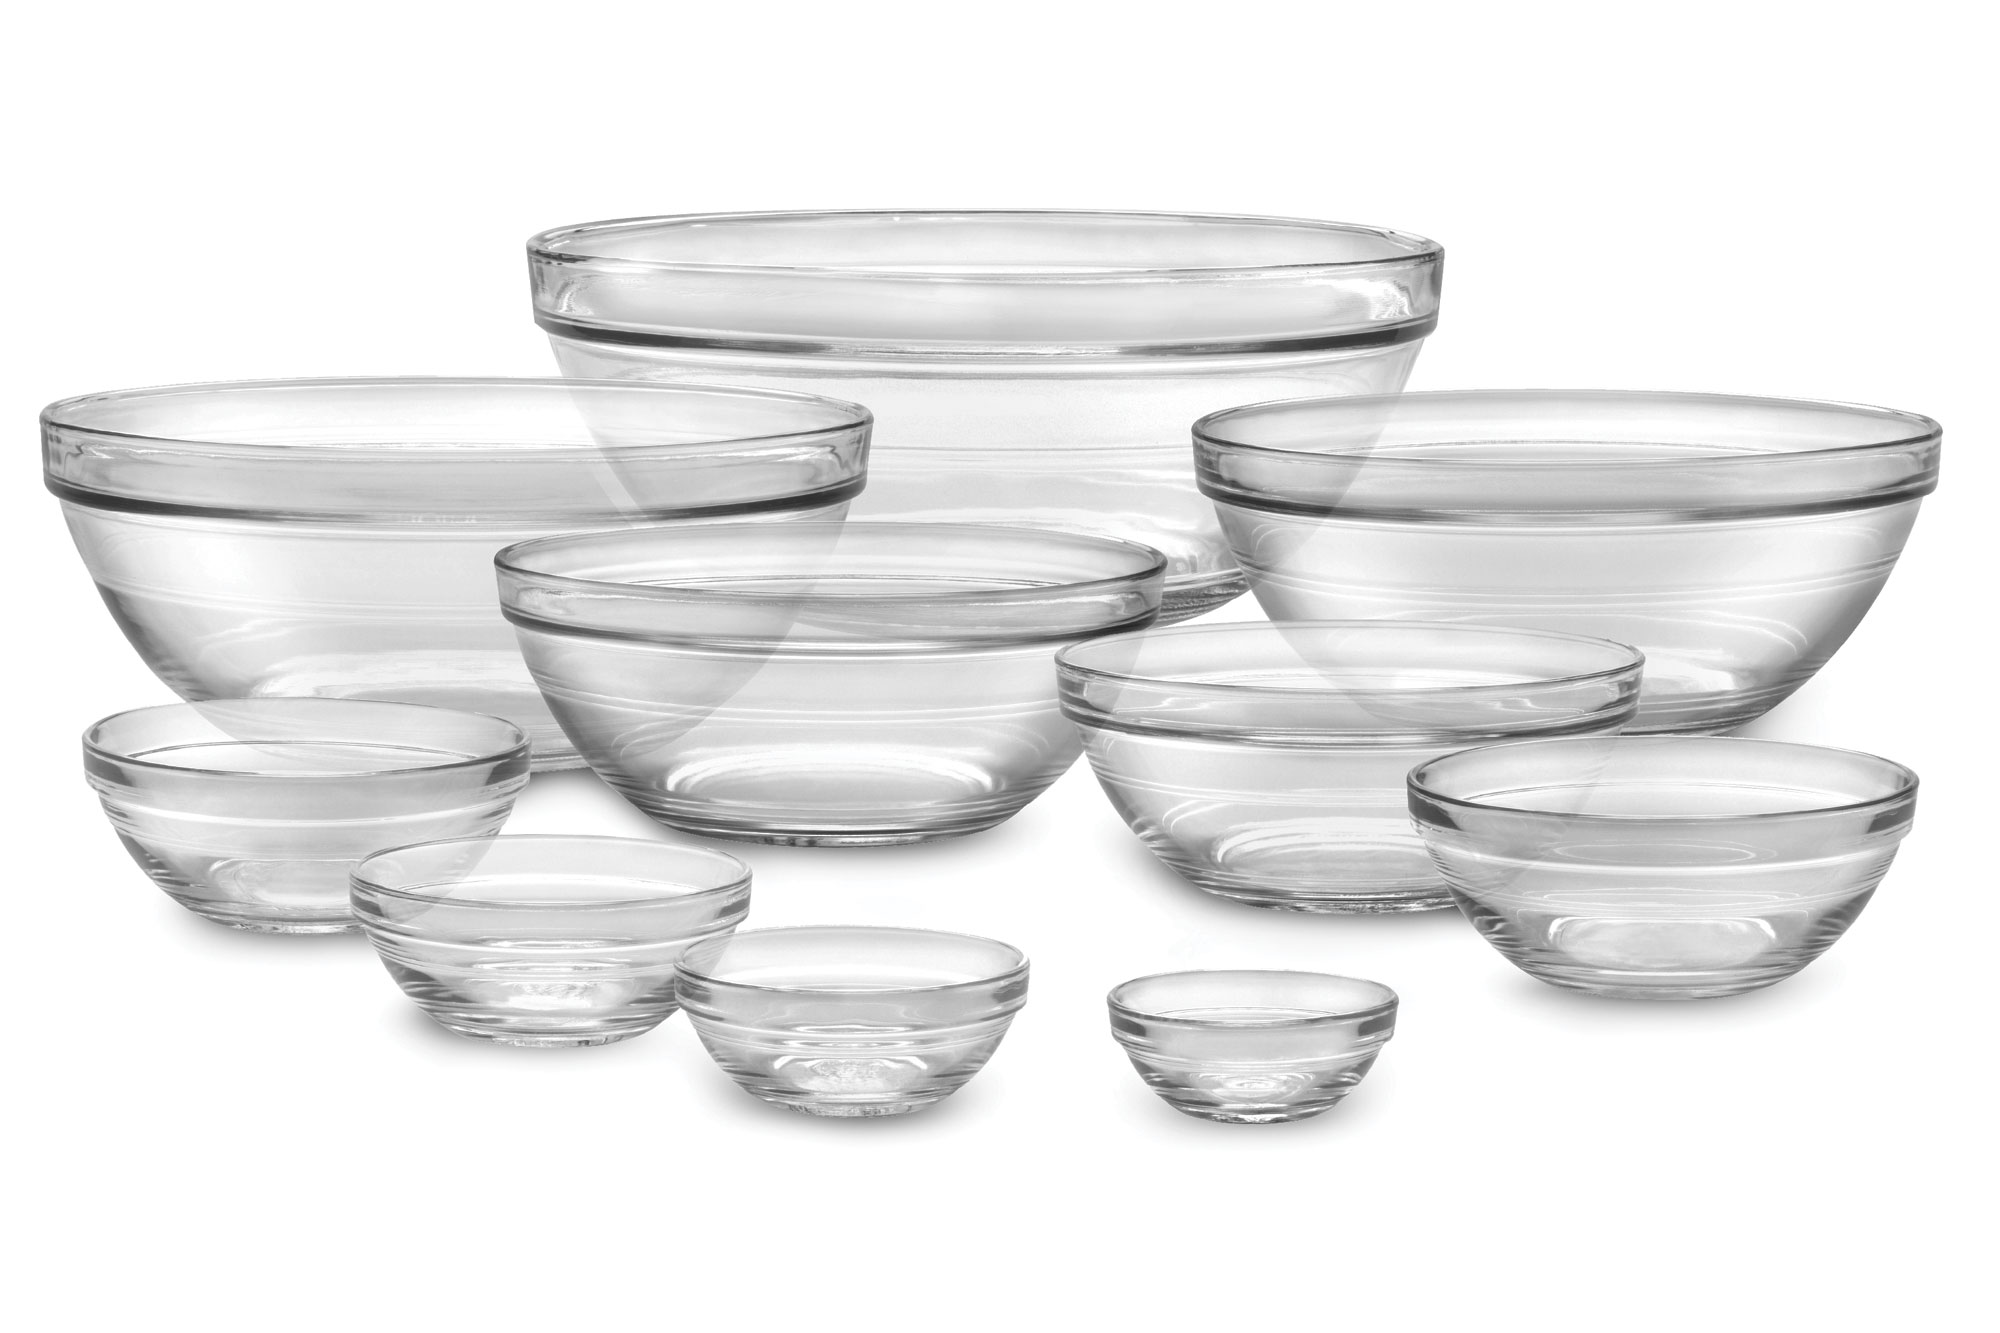 Duralex Lys Nesting Glass Bowl Set 10 Piece Cutlery And